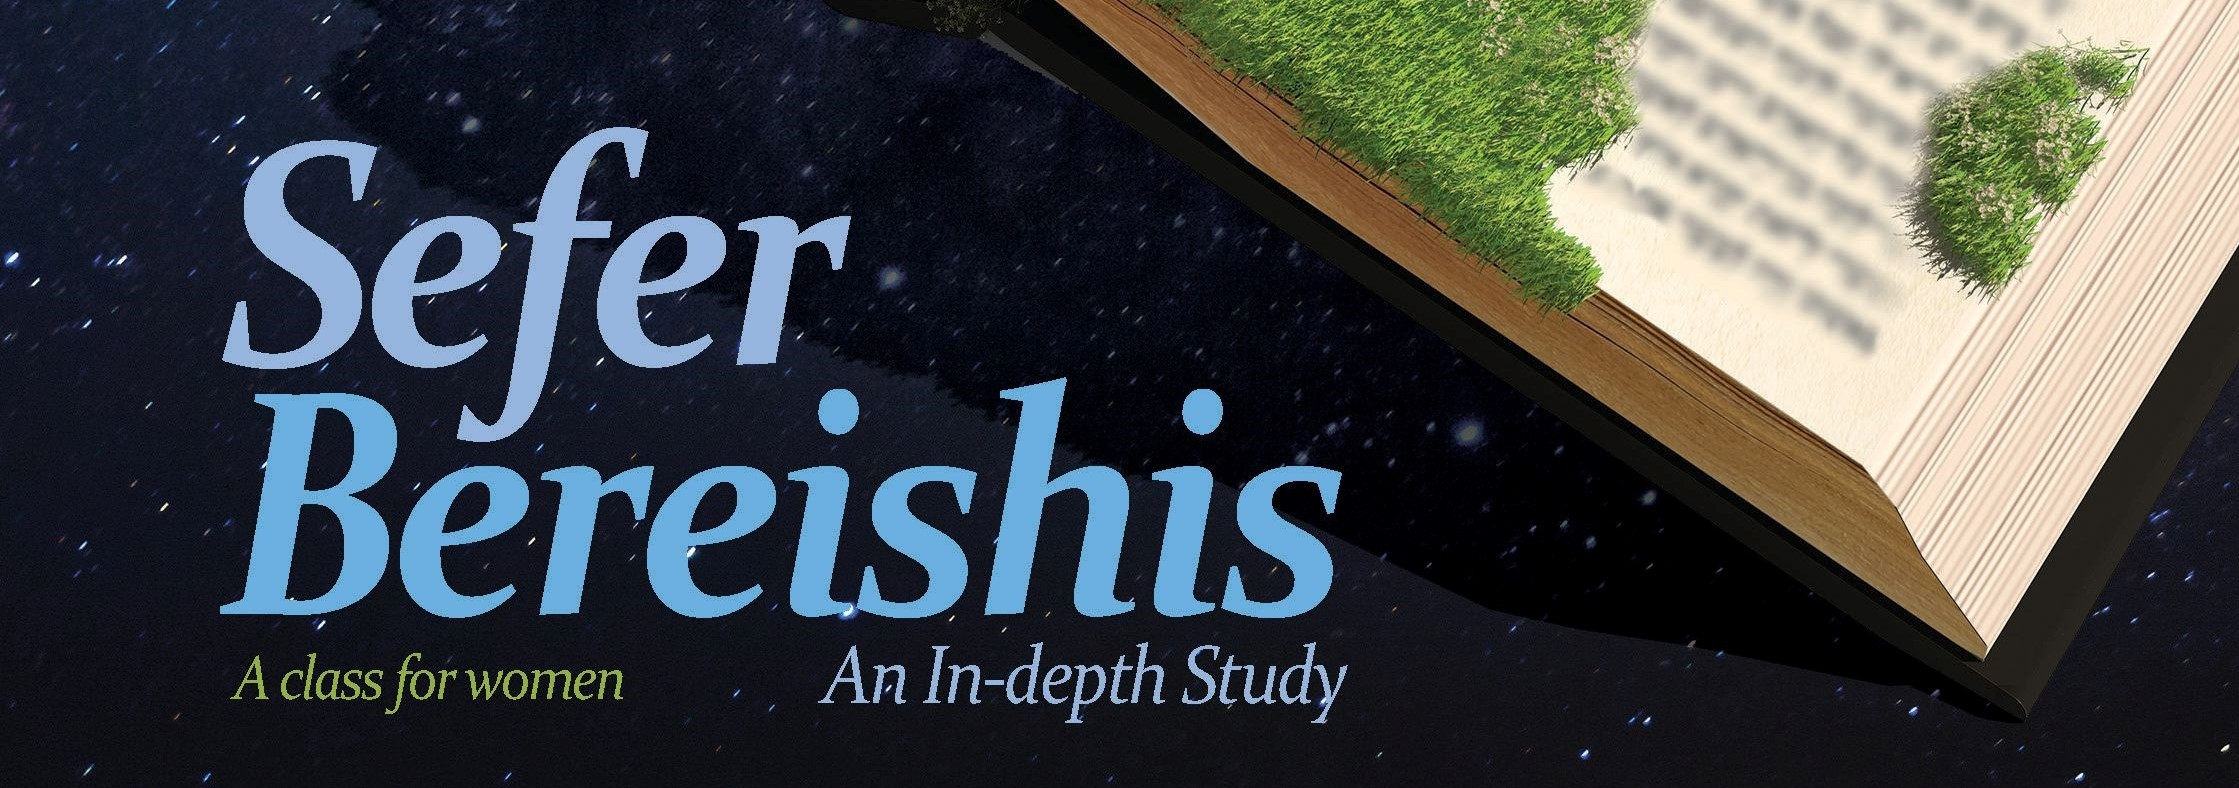 Sefer Bereishis - An In-depth Study